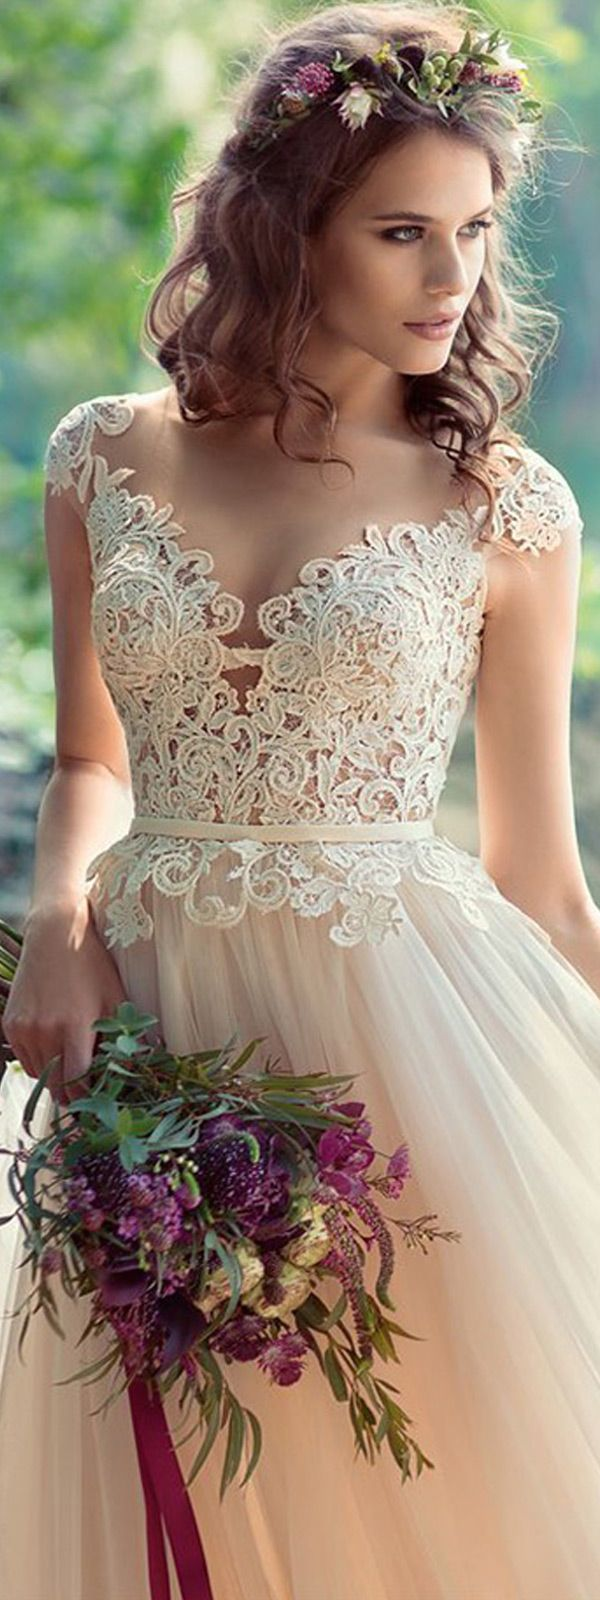 Lace wedding dress under 500 february 2019  best Wedding Dress images on Pinterest  Weddings Bridal and